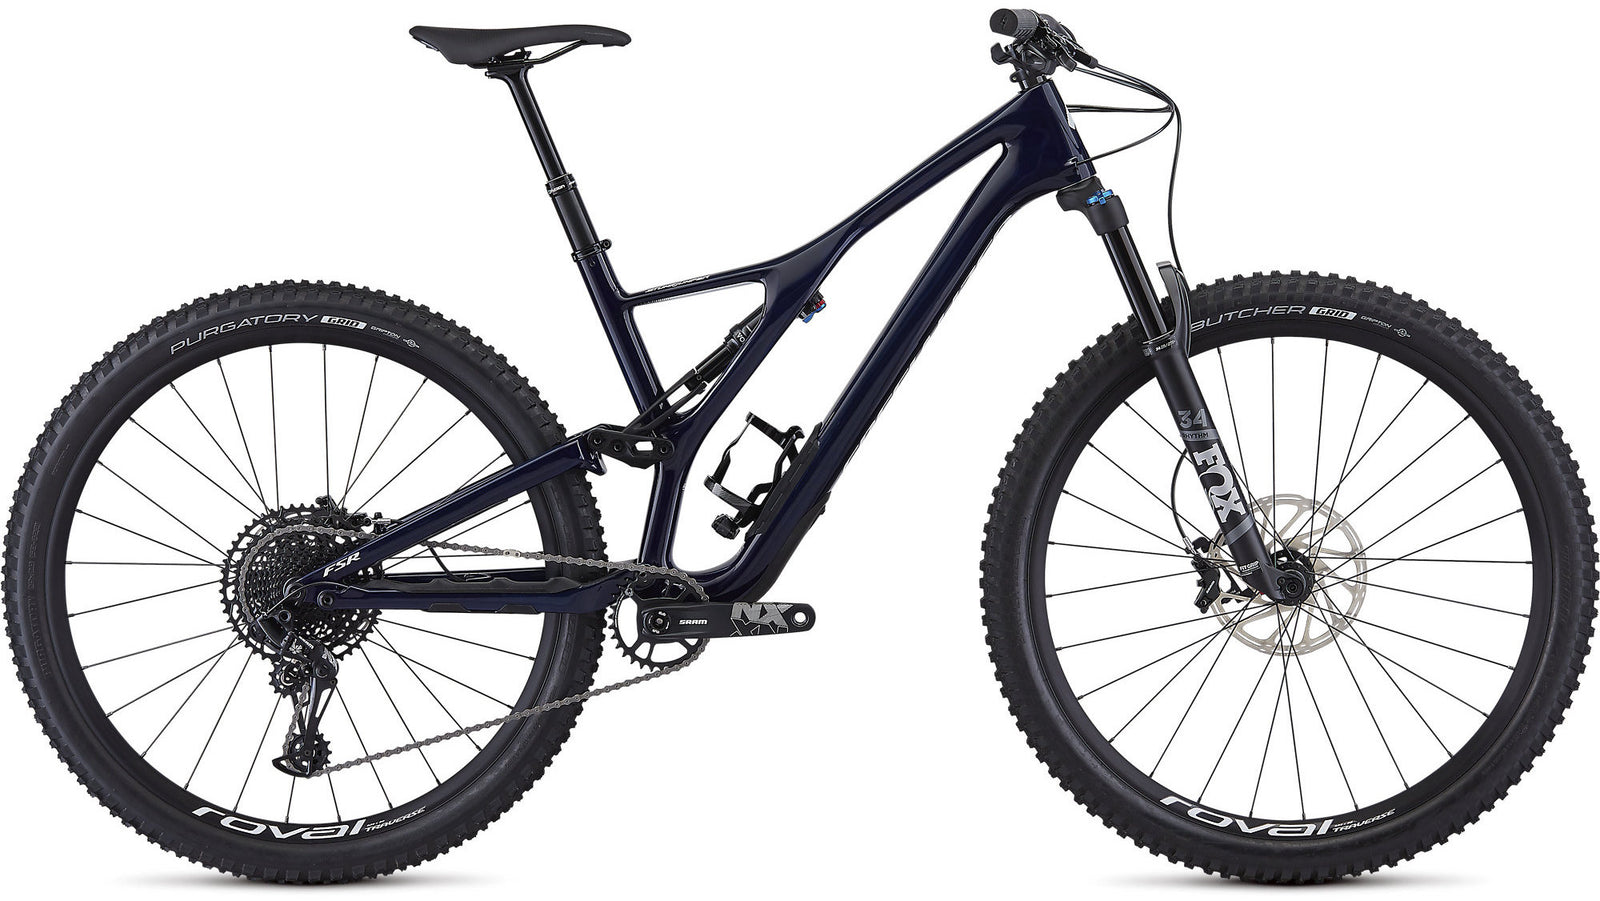 2019 All-New Stumpjumper ST Comp Carbon 29